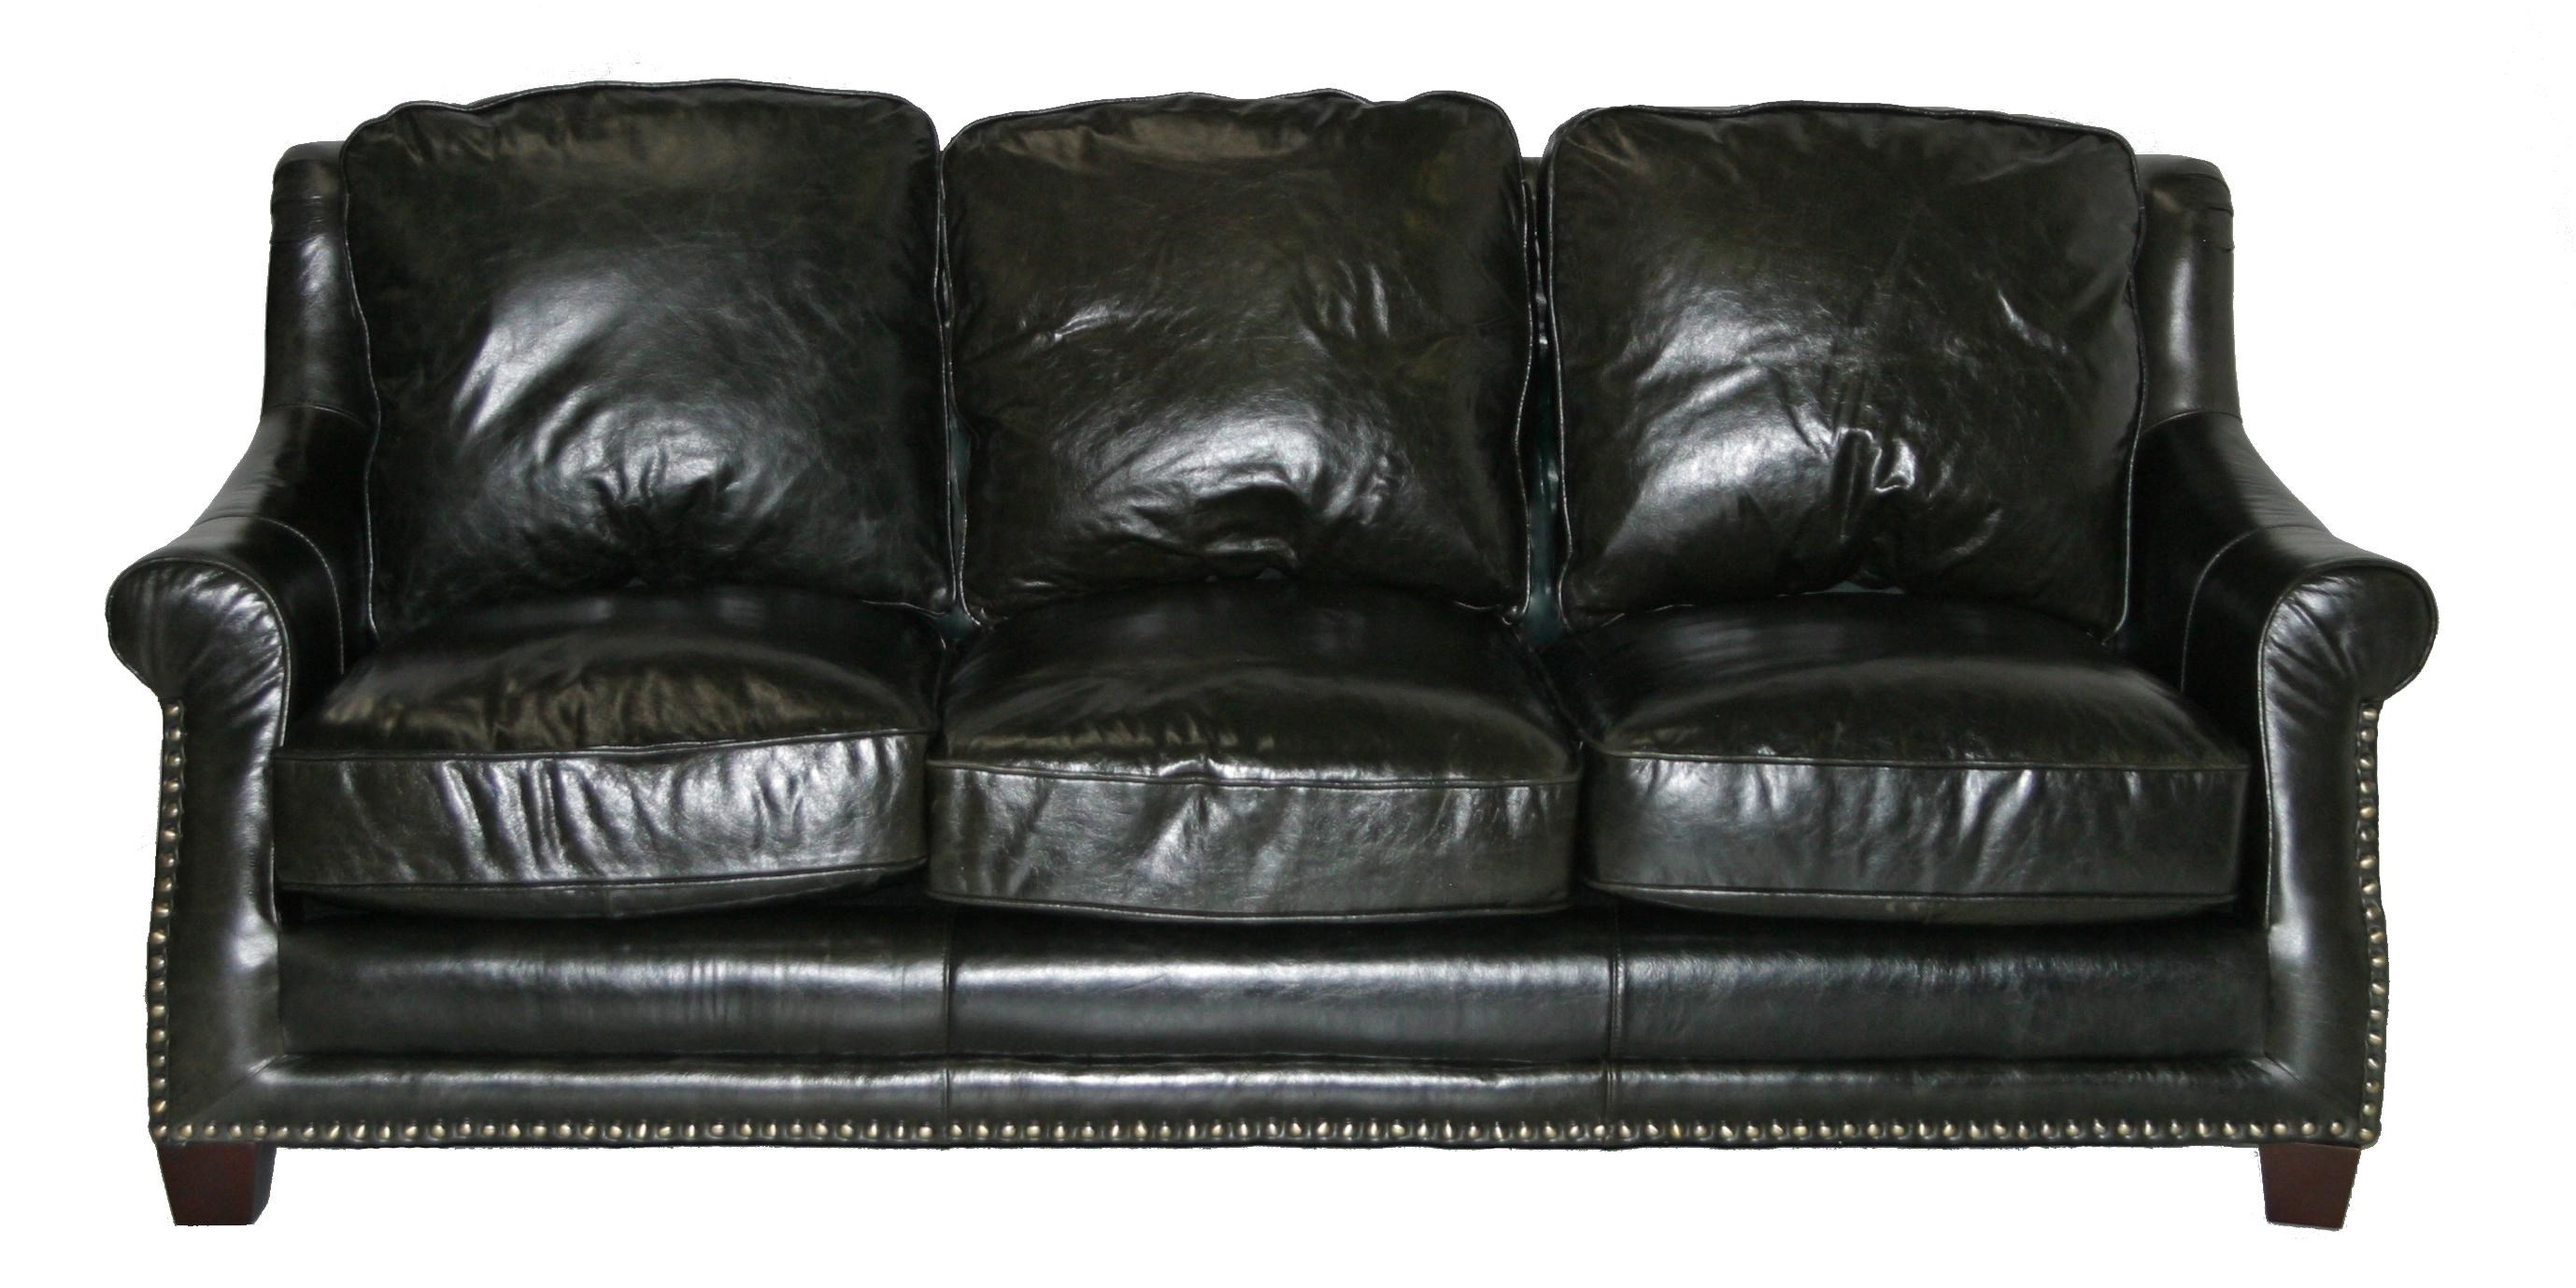 Leather Italia USA Buchanan Traditional Leather Sofa W/ Nailhead Trim